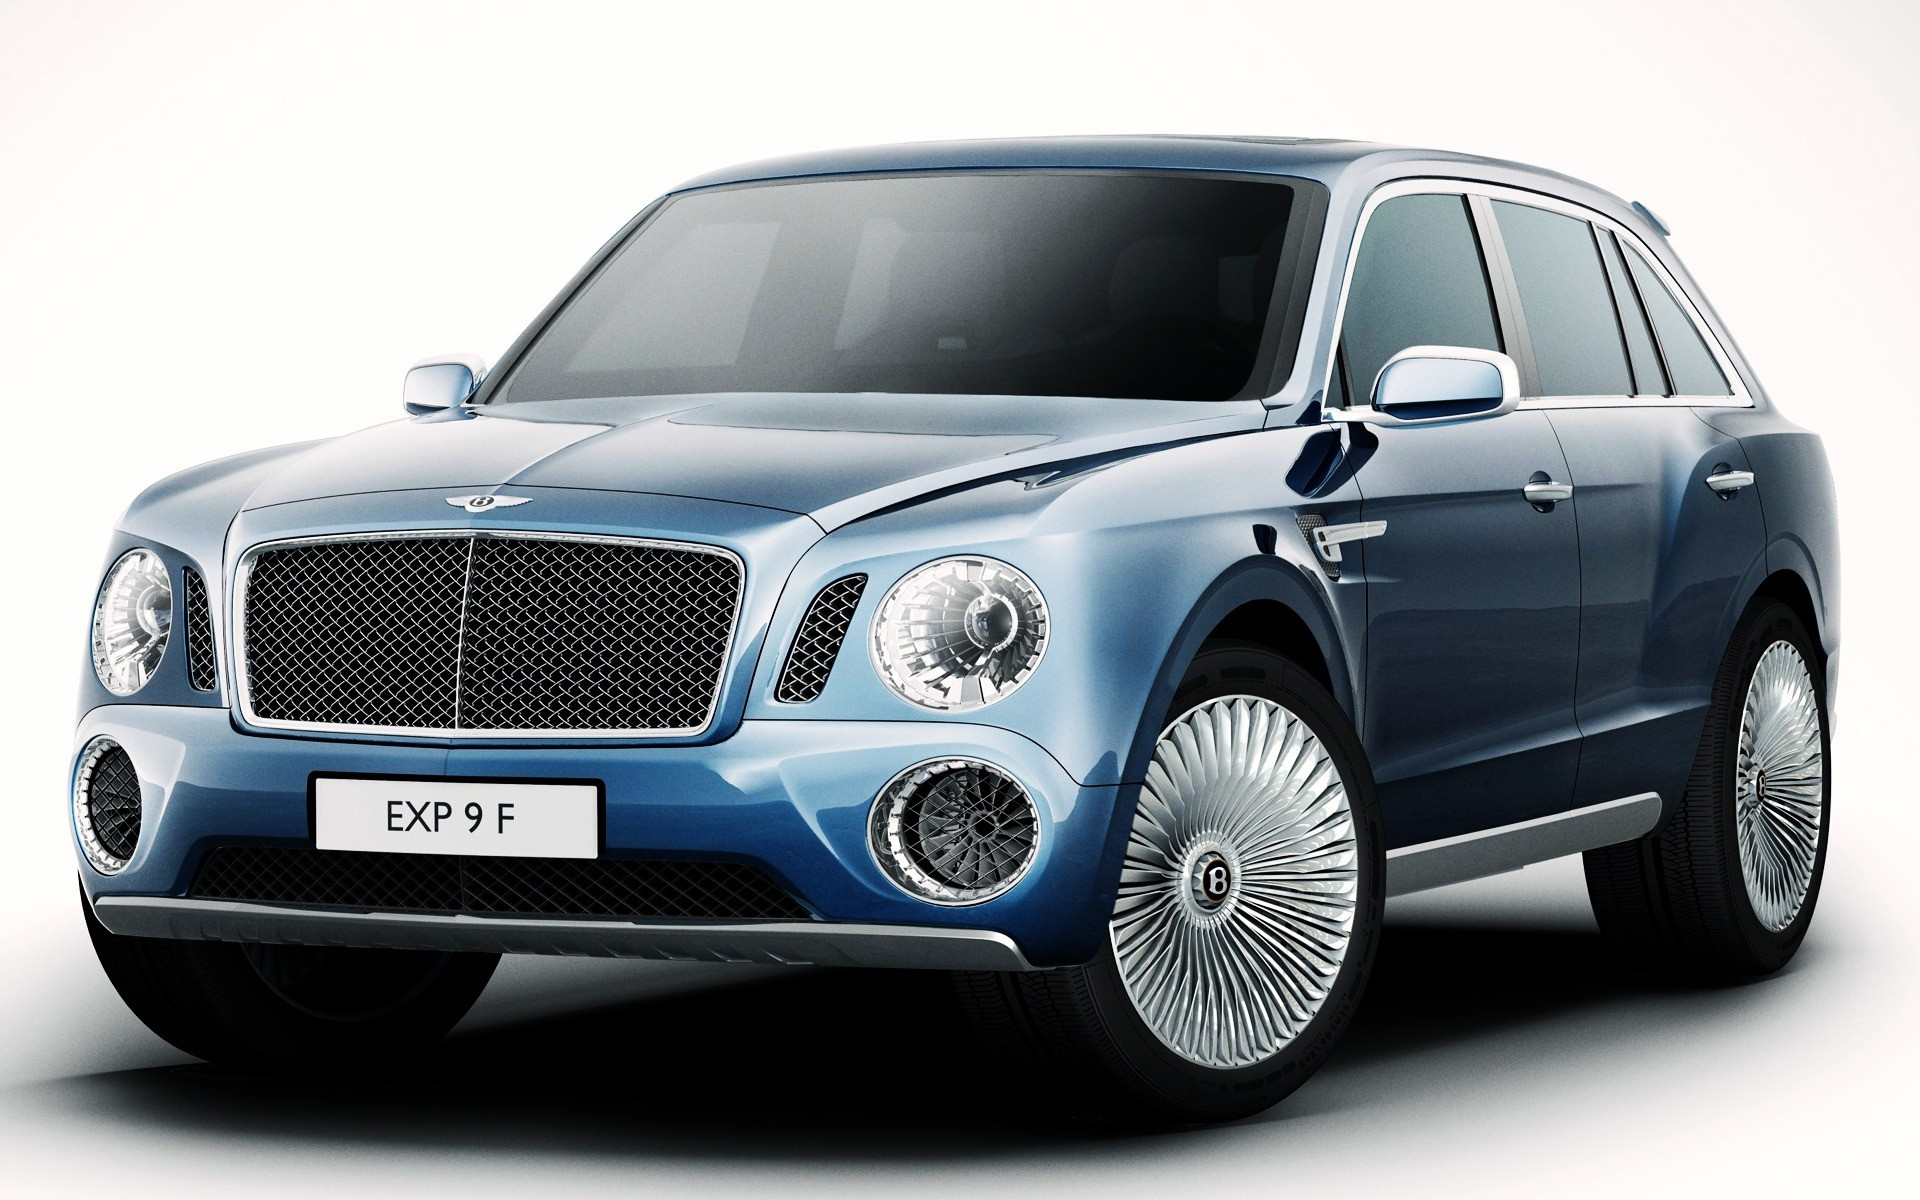 bentley car vehicle wheel drive transportation system automotive bentley suv bentley concept car bentley concept